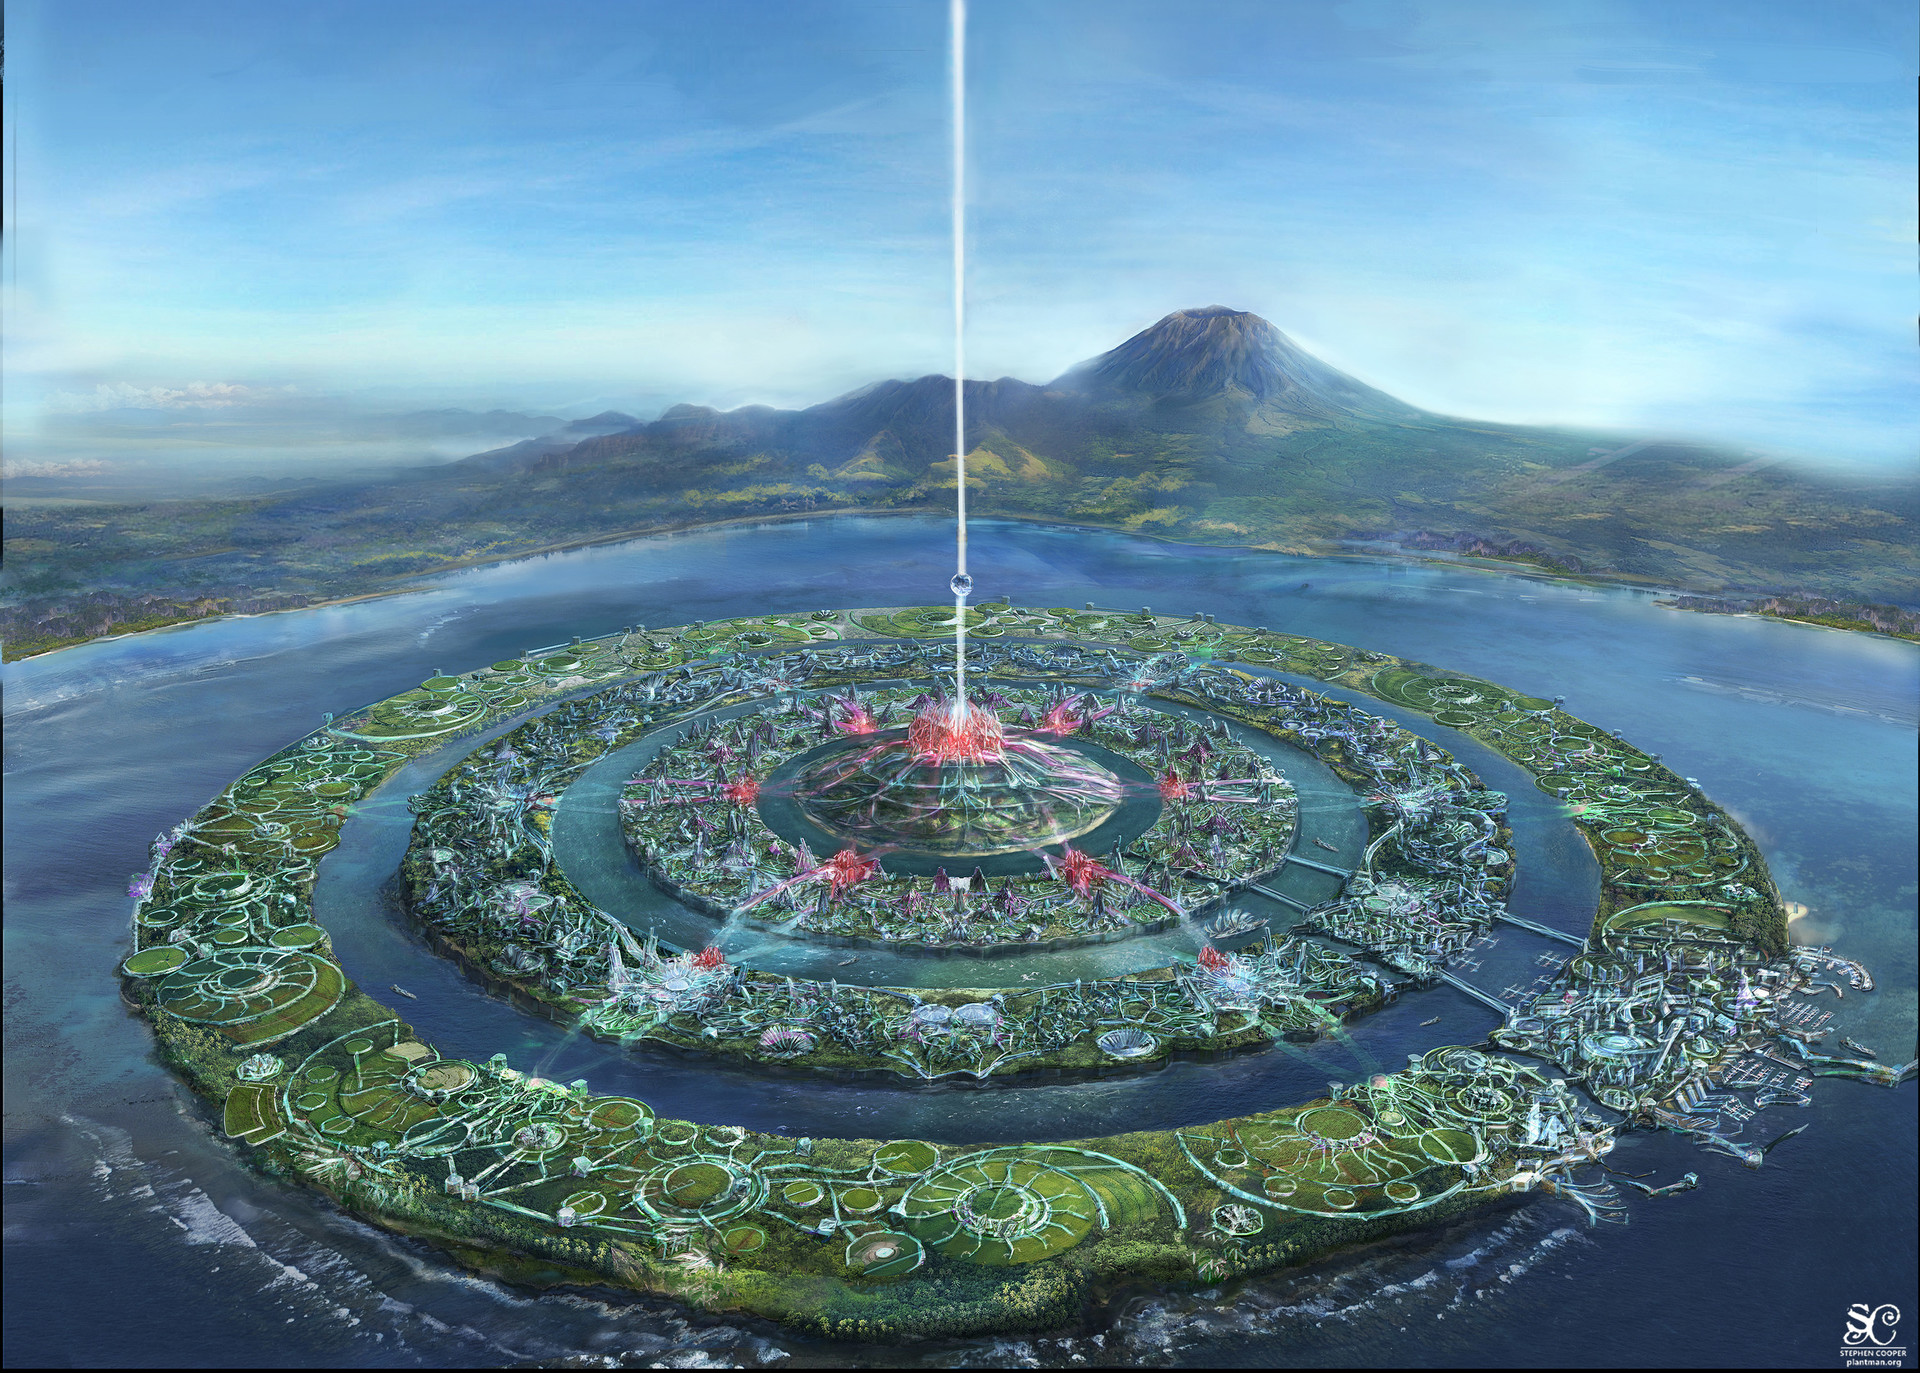 ancient philippine civilization Ancient origins articles related to philippines in the sections of history, archaeology, human origins, unexplained, artifacts, ancient places and myths and legends.